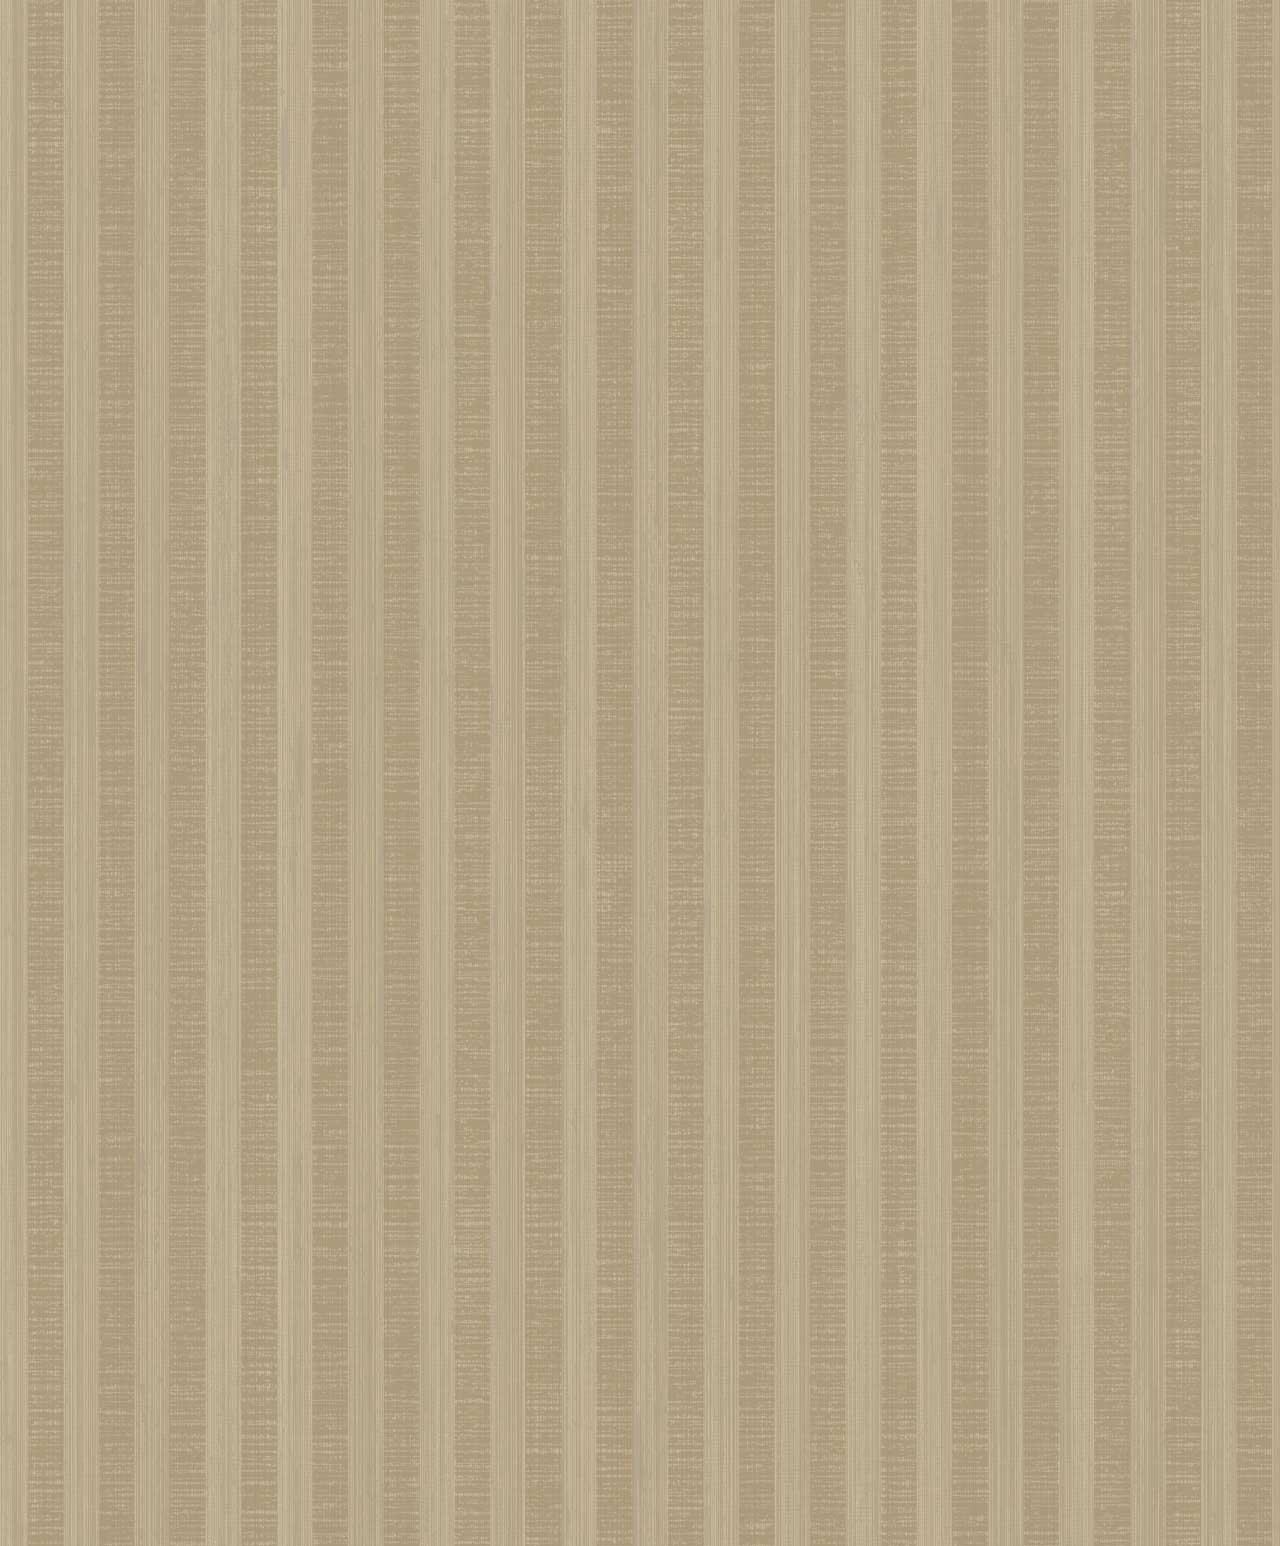 Sloan-Luxury-Wallpaper-SL00824-SLOANE-STRIPE